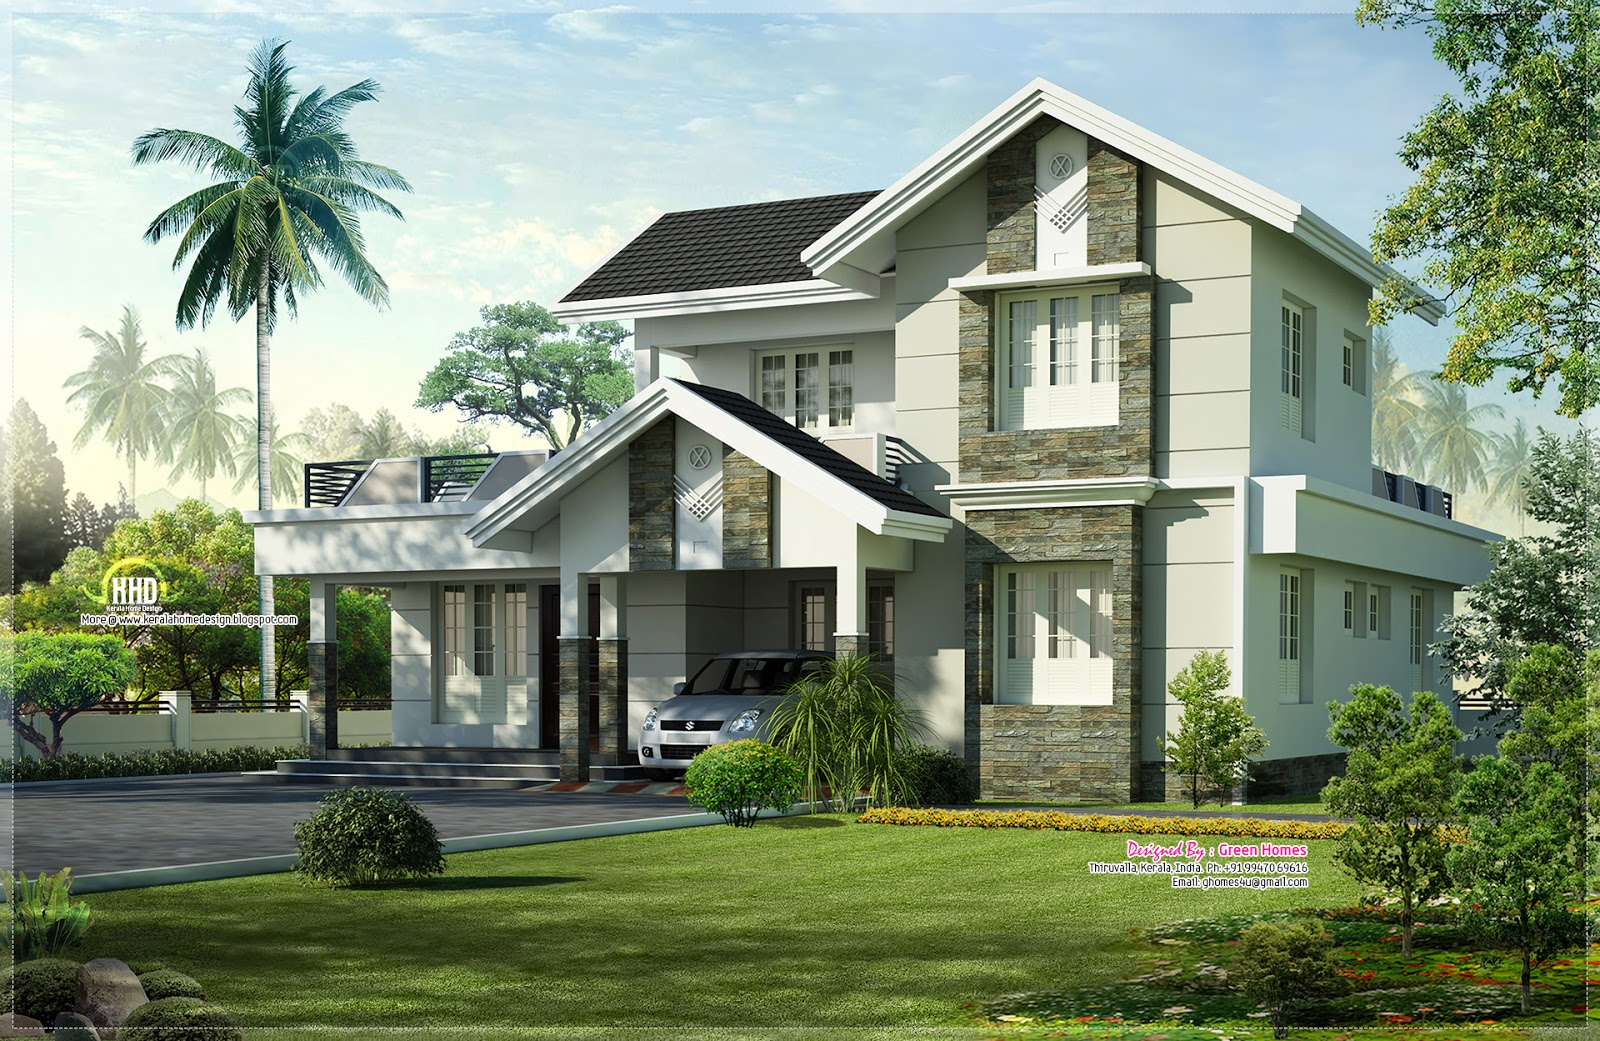 1975 nice home exterior design home kerala plans for Indian home design 2011 beautiful photos exterior